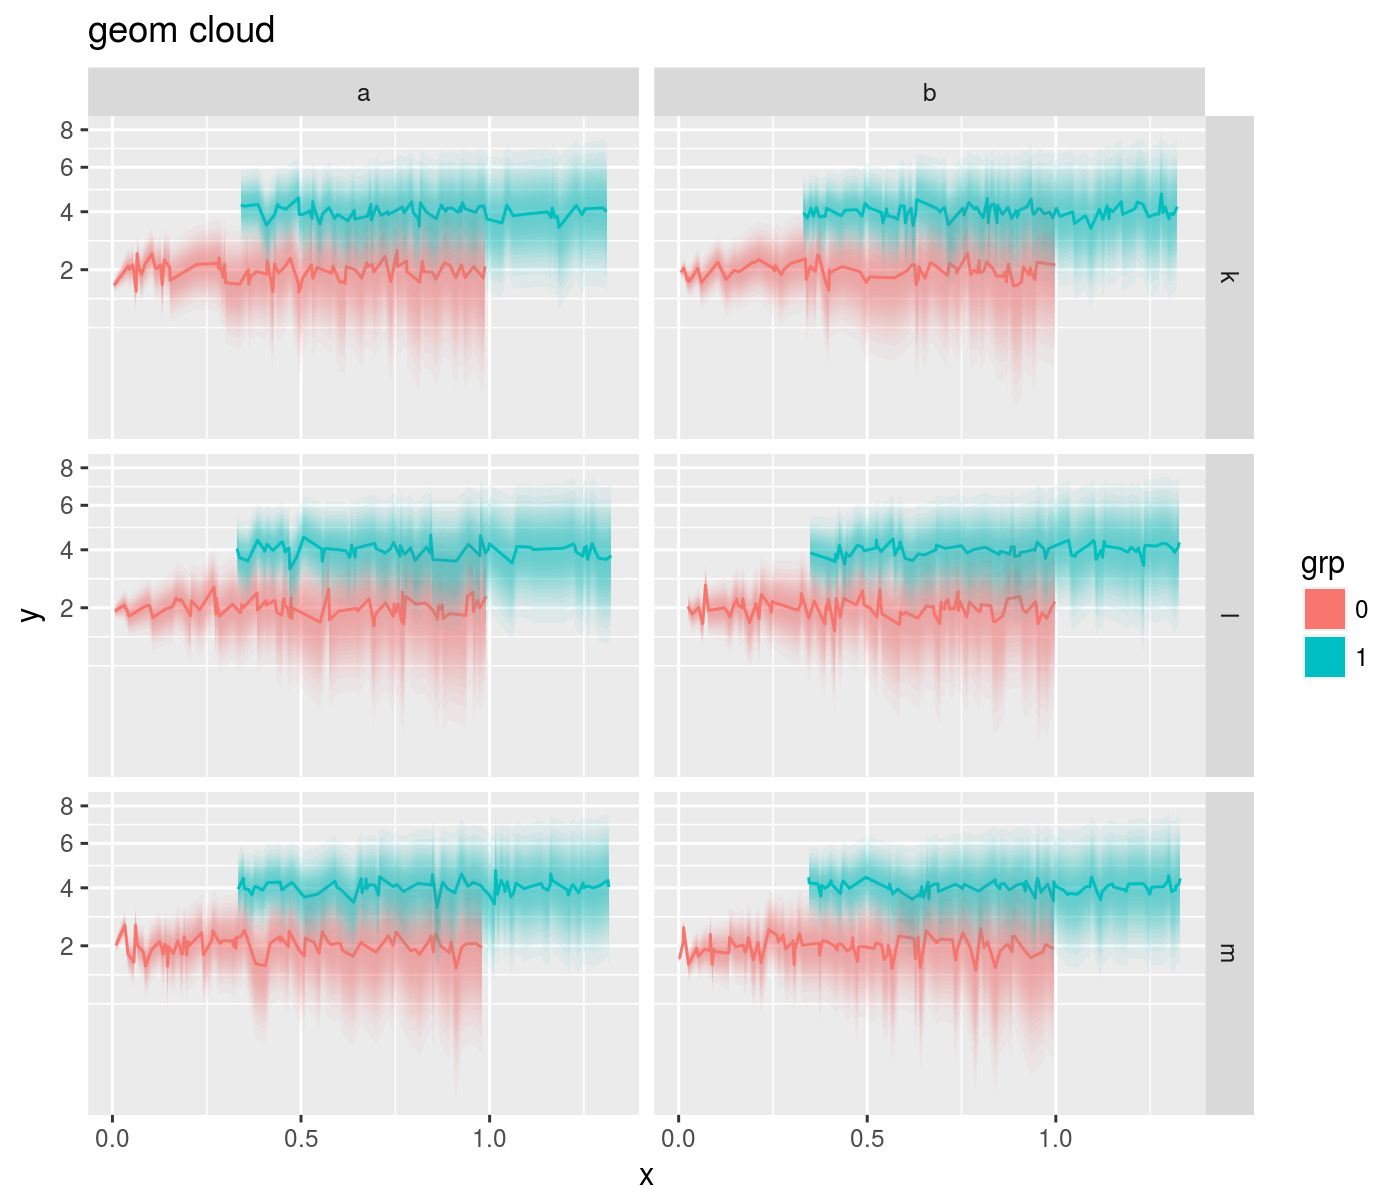 plot of chunk geom_cloud